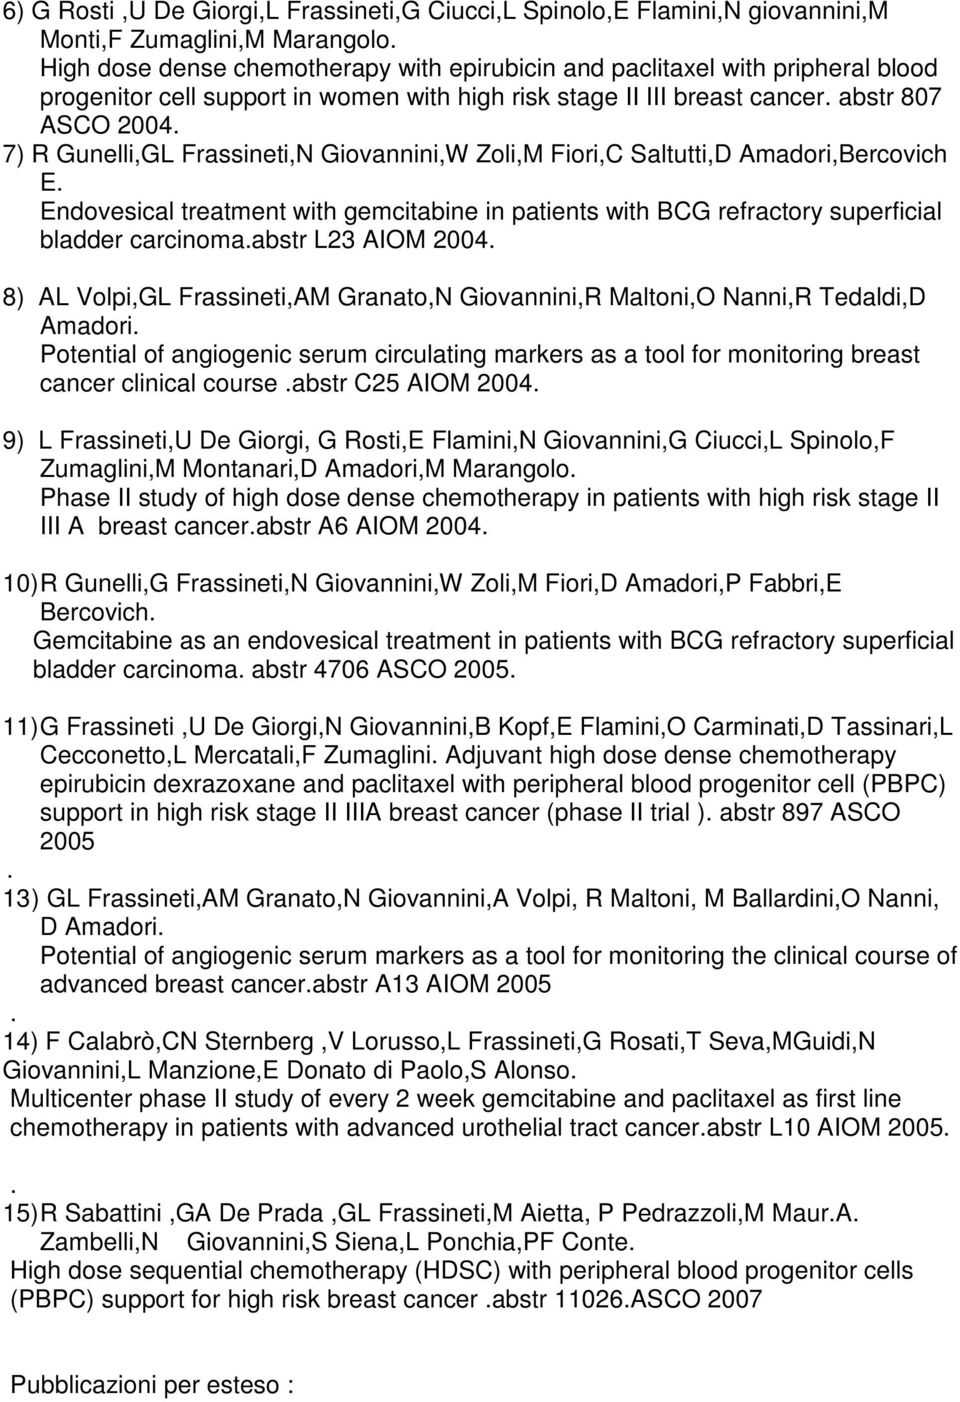 7) R Gunelli,GL Frassineti,N Giovannini,W Zoli,M Fiori,C Saltutti,D Amadori,Bercovich E. Endovesical treatment with gemcitabine in patients with BCG refractory superficial bladder carcinoma.